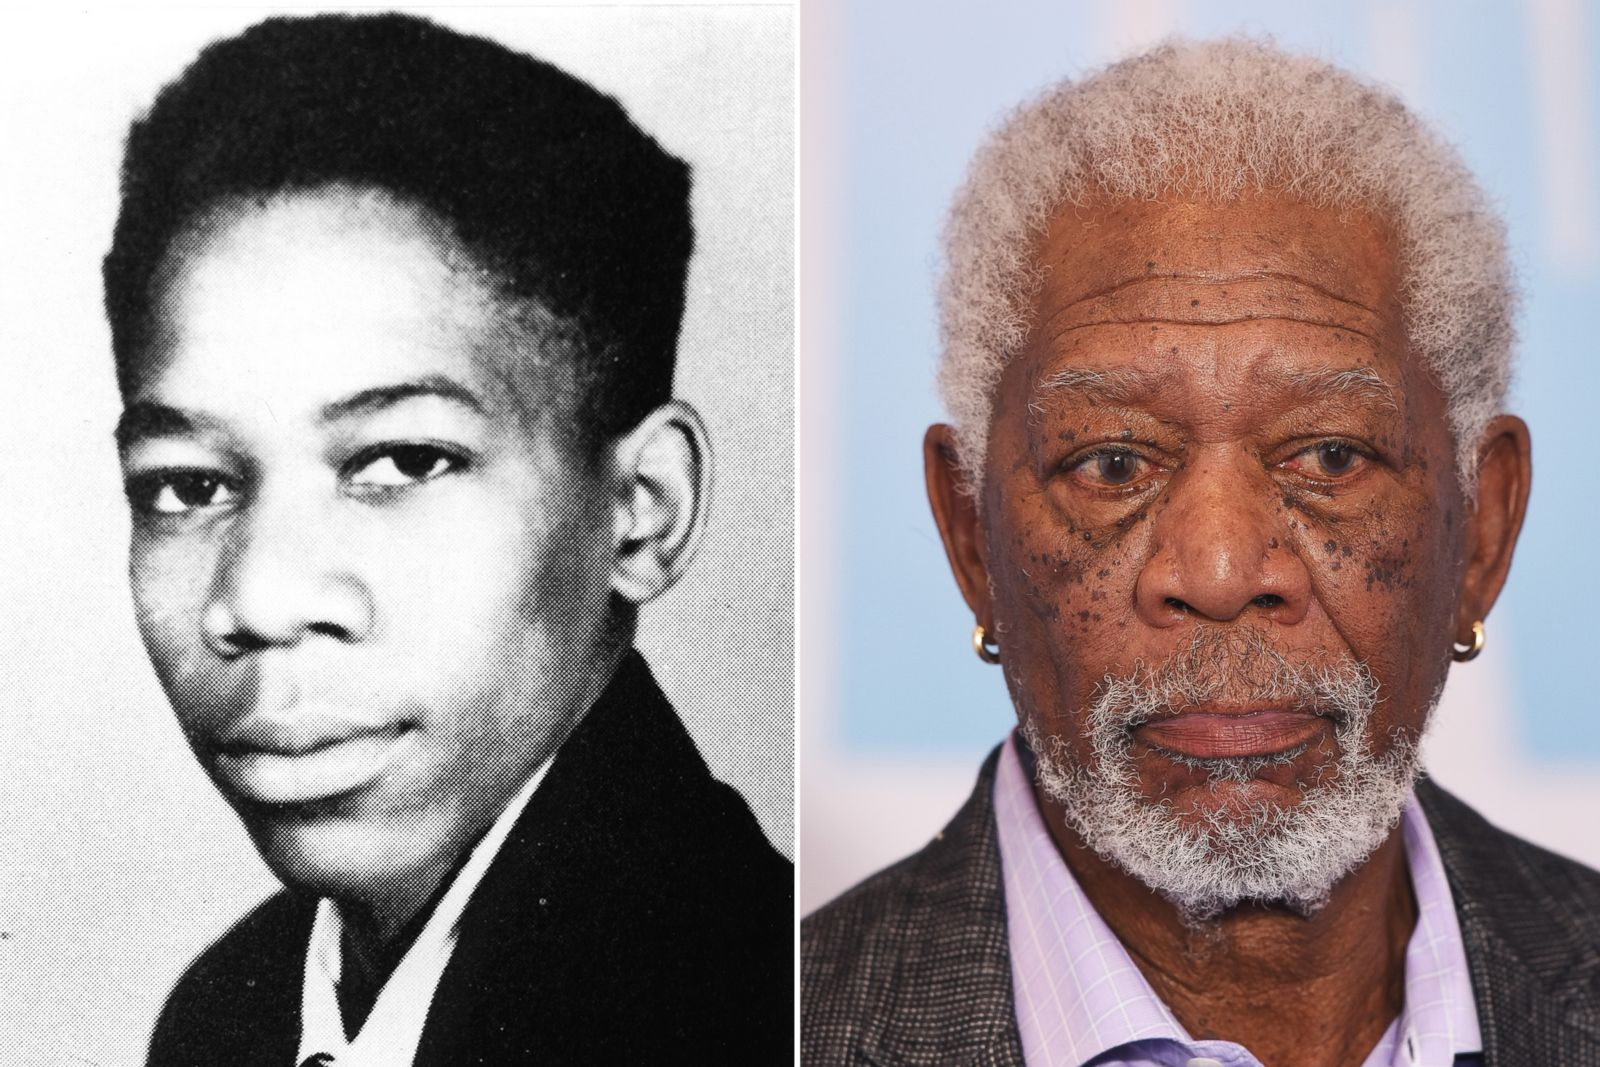 ' ' from the web at 'https://s.abcnews.com/images/Entertainment/HT-GTY-Morgan-Freeman-ml-170601_3x2_1600.jpg'